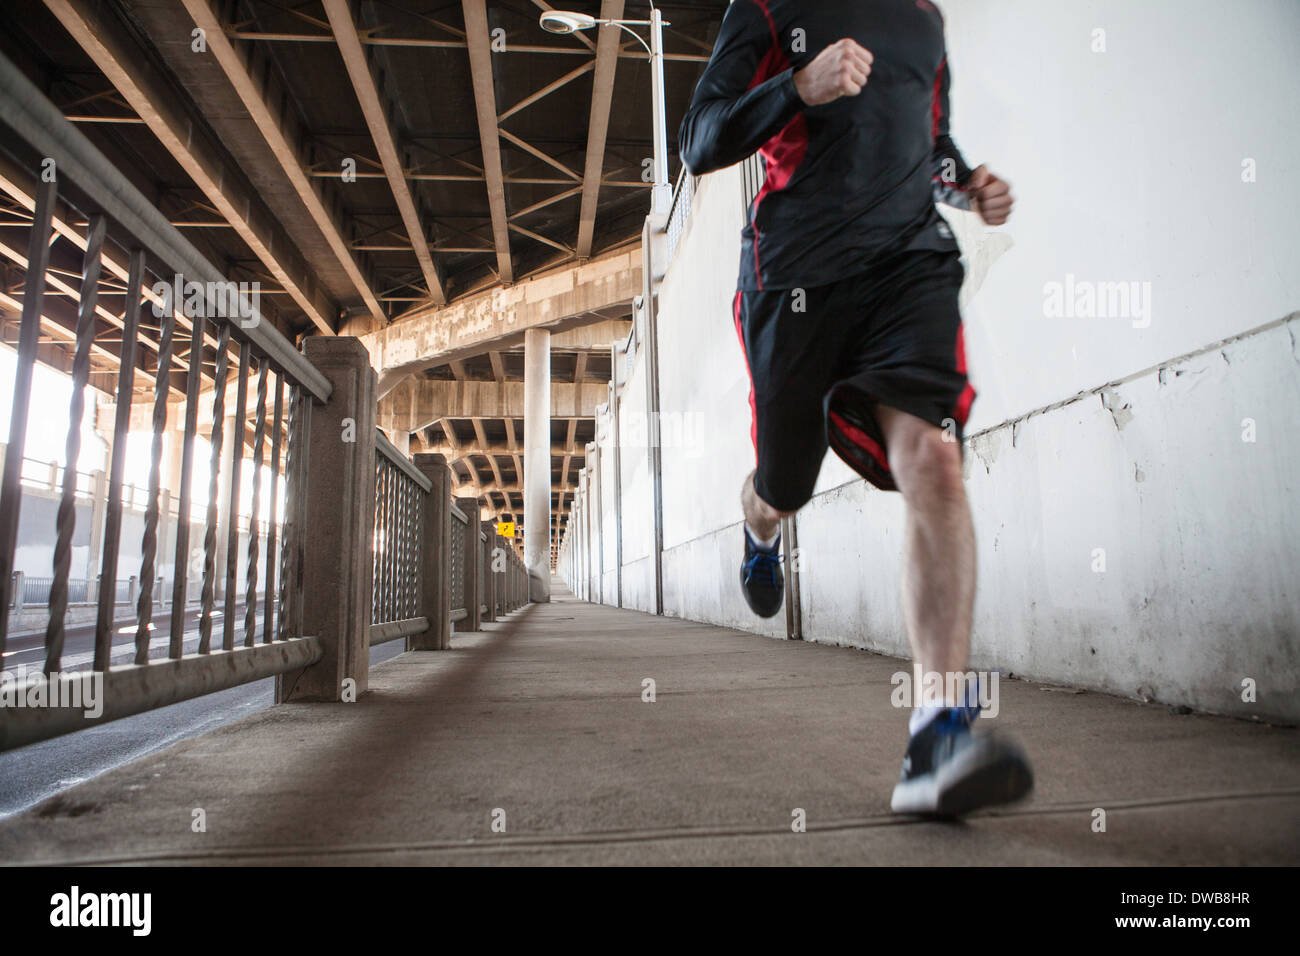 Cropped shot of young man running on city bridge - Stock Image